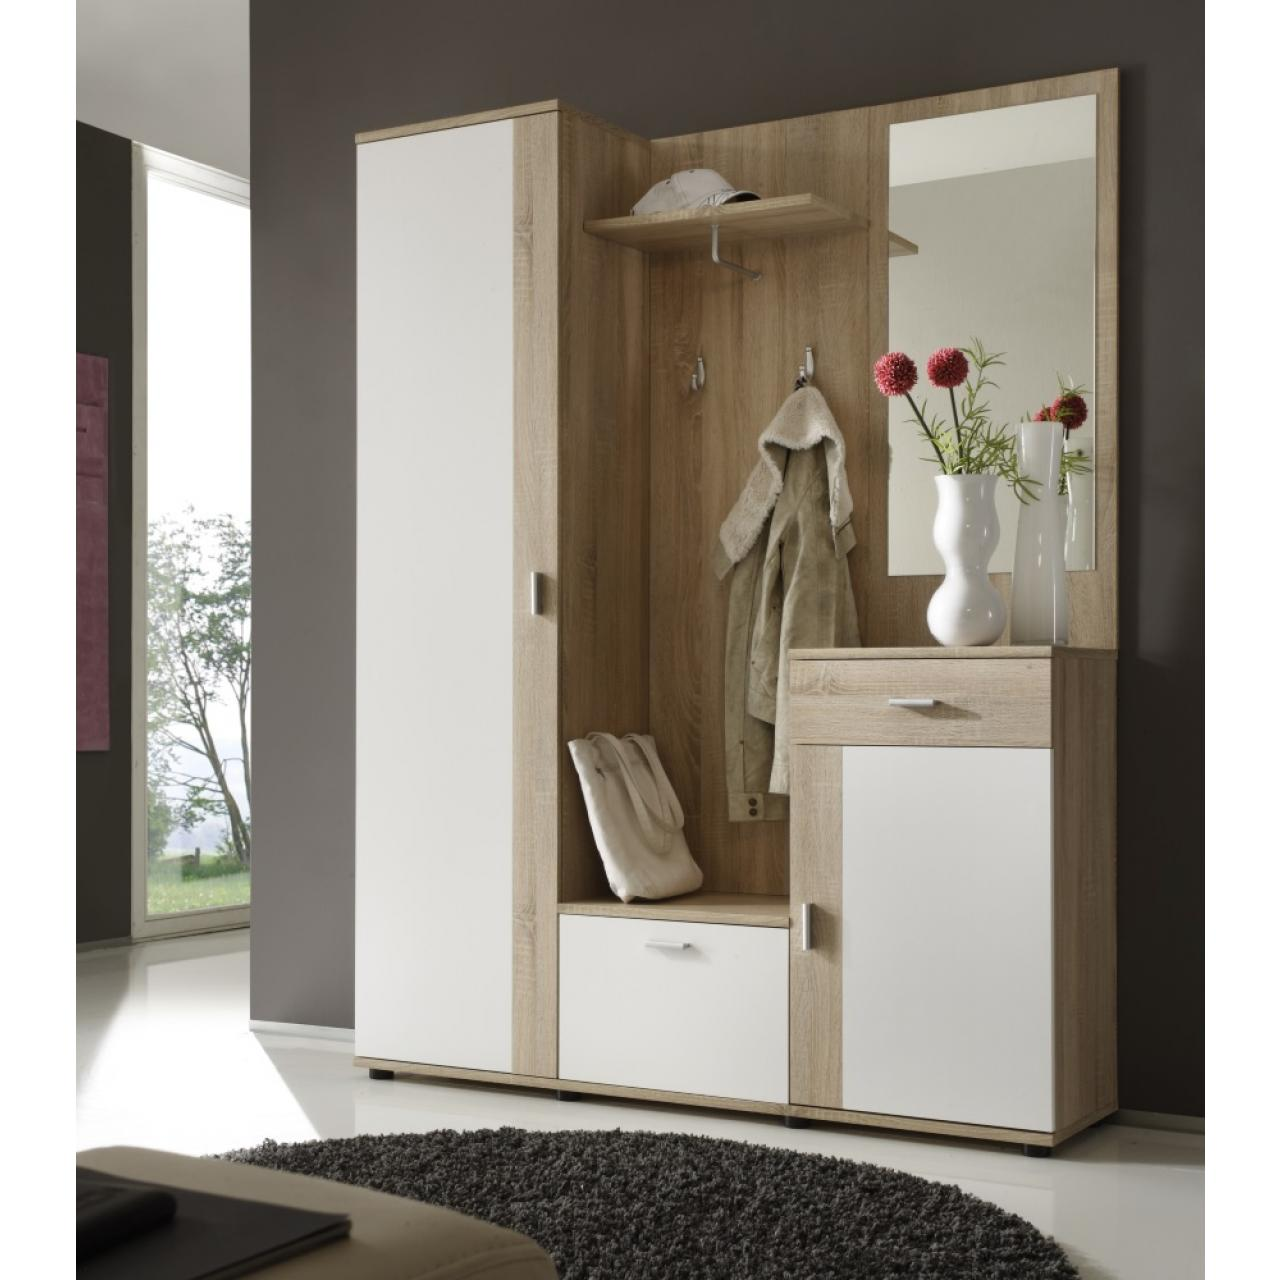 garderobe patent garderoben wohnen m bel j hnichen center gmbh. Black Bedroom Furniture Sets. Home Design Ideas